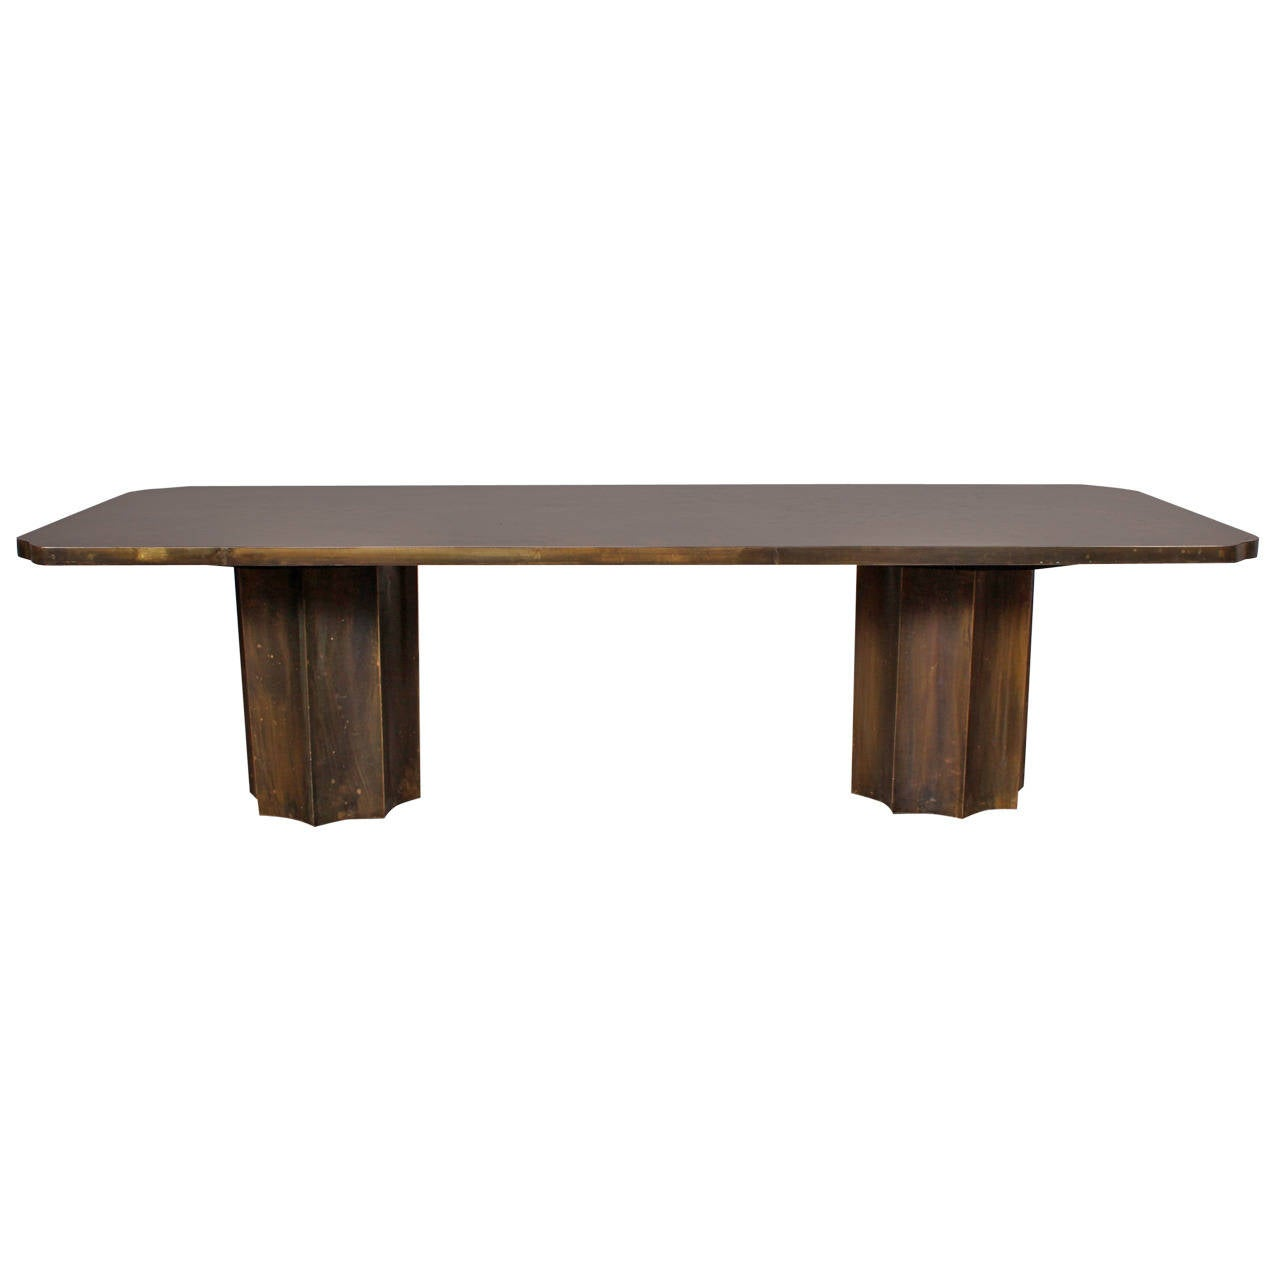 Philip and kelvin laverne michelangelo bronze coffee table at 1stdibs Bronze coffee tables